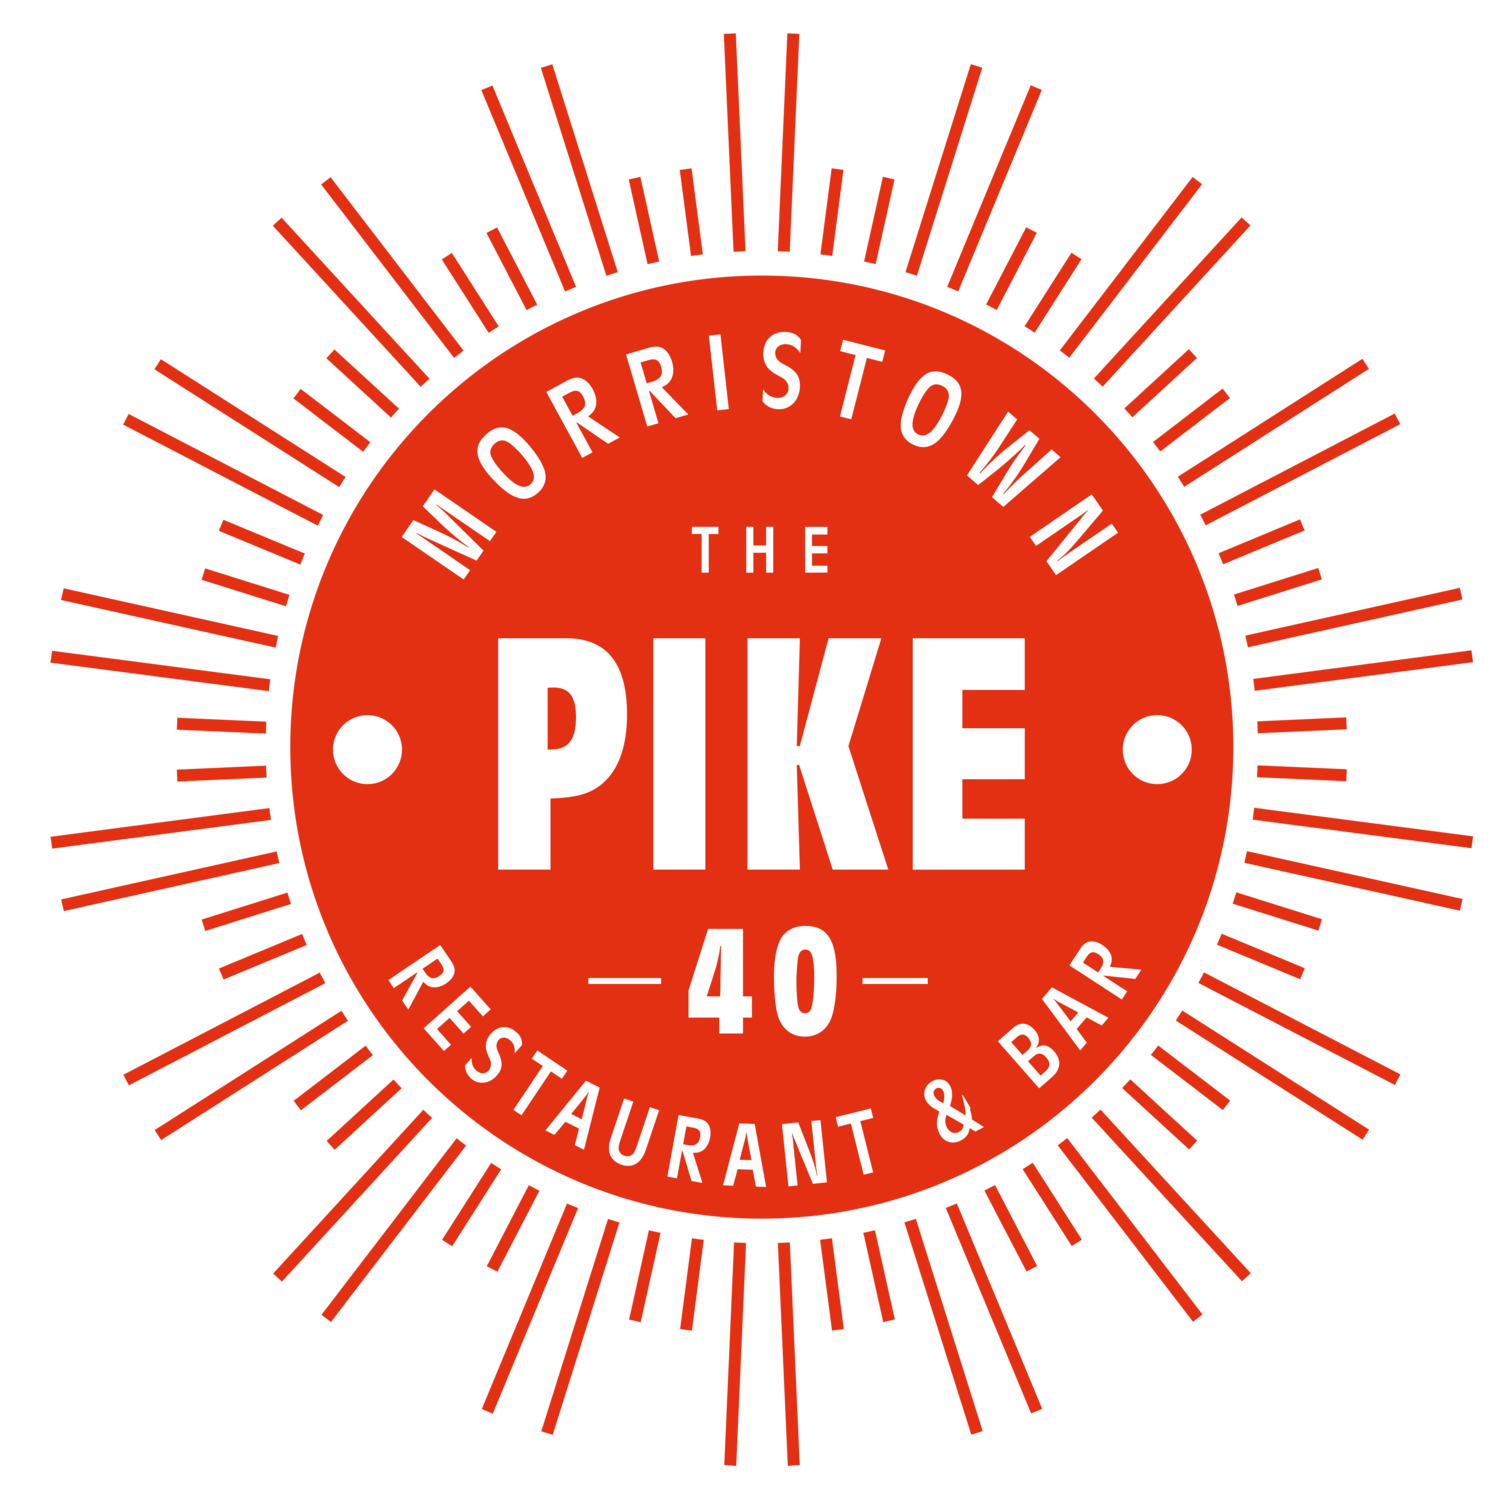 The pike 40